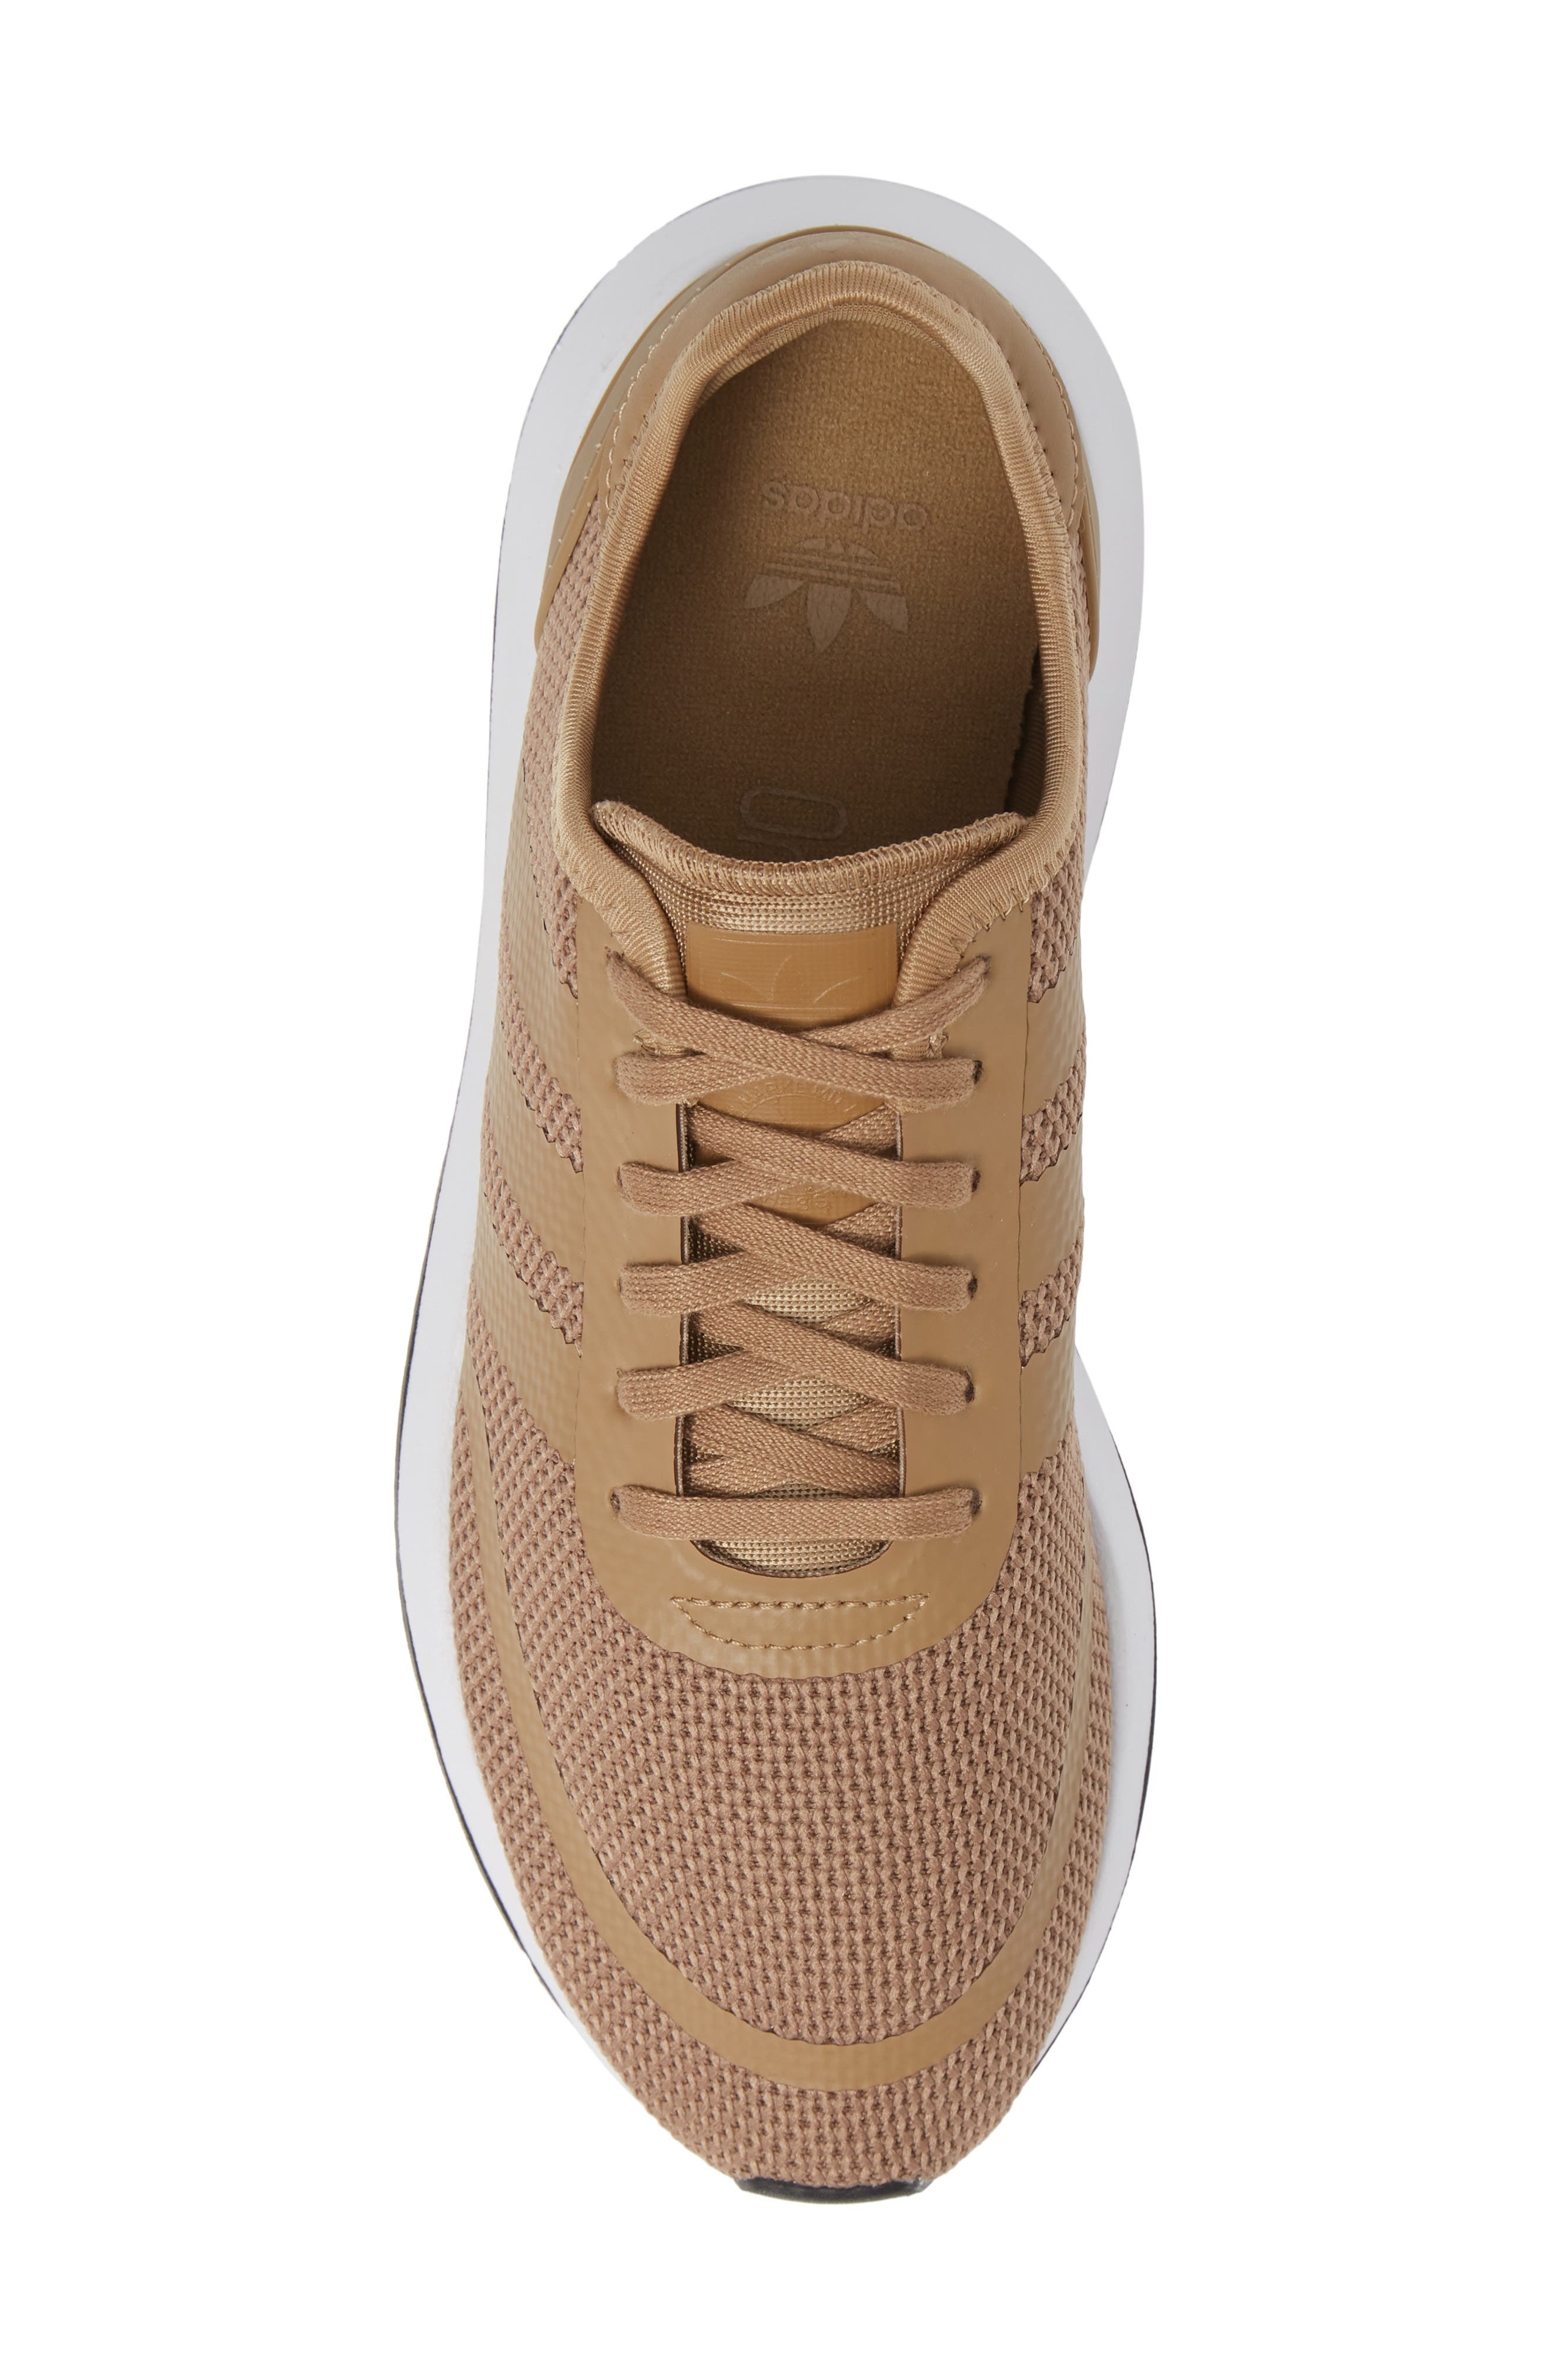 N-5923 Sneaker,                             Alternate thumbnail 29, color,